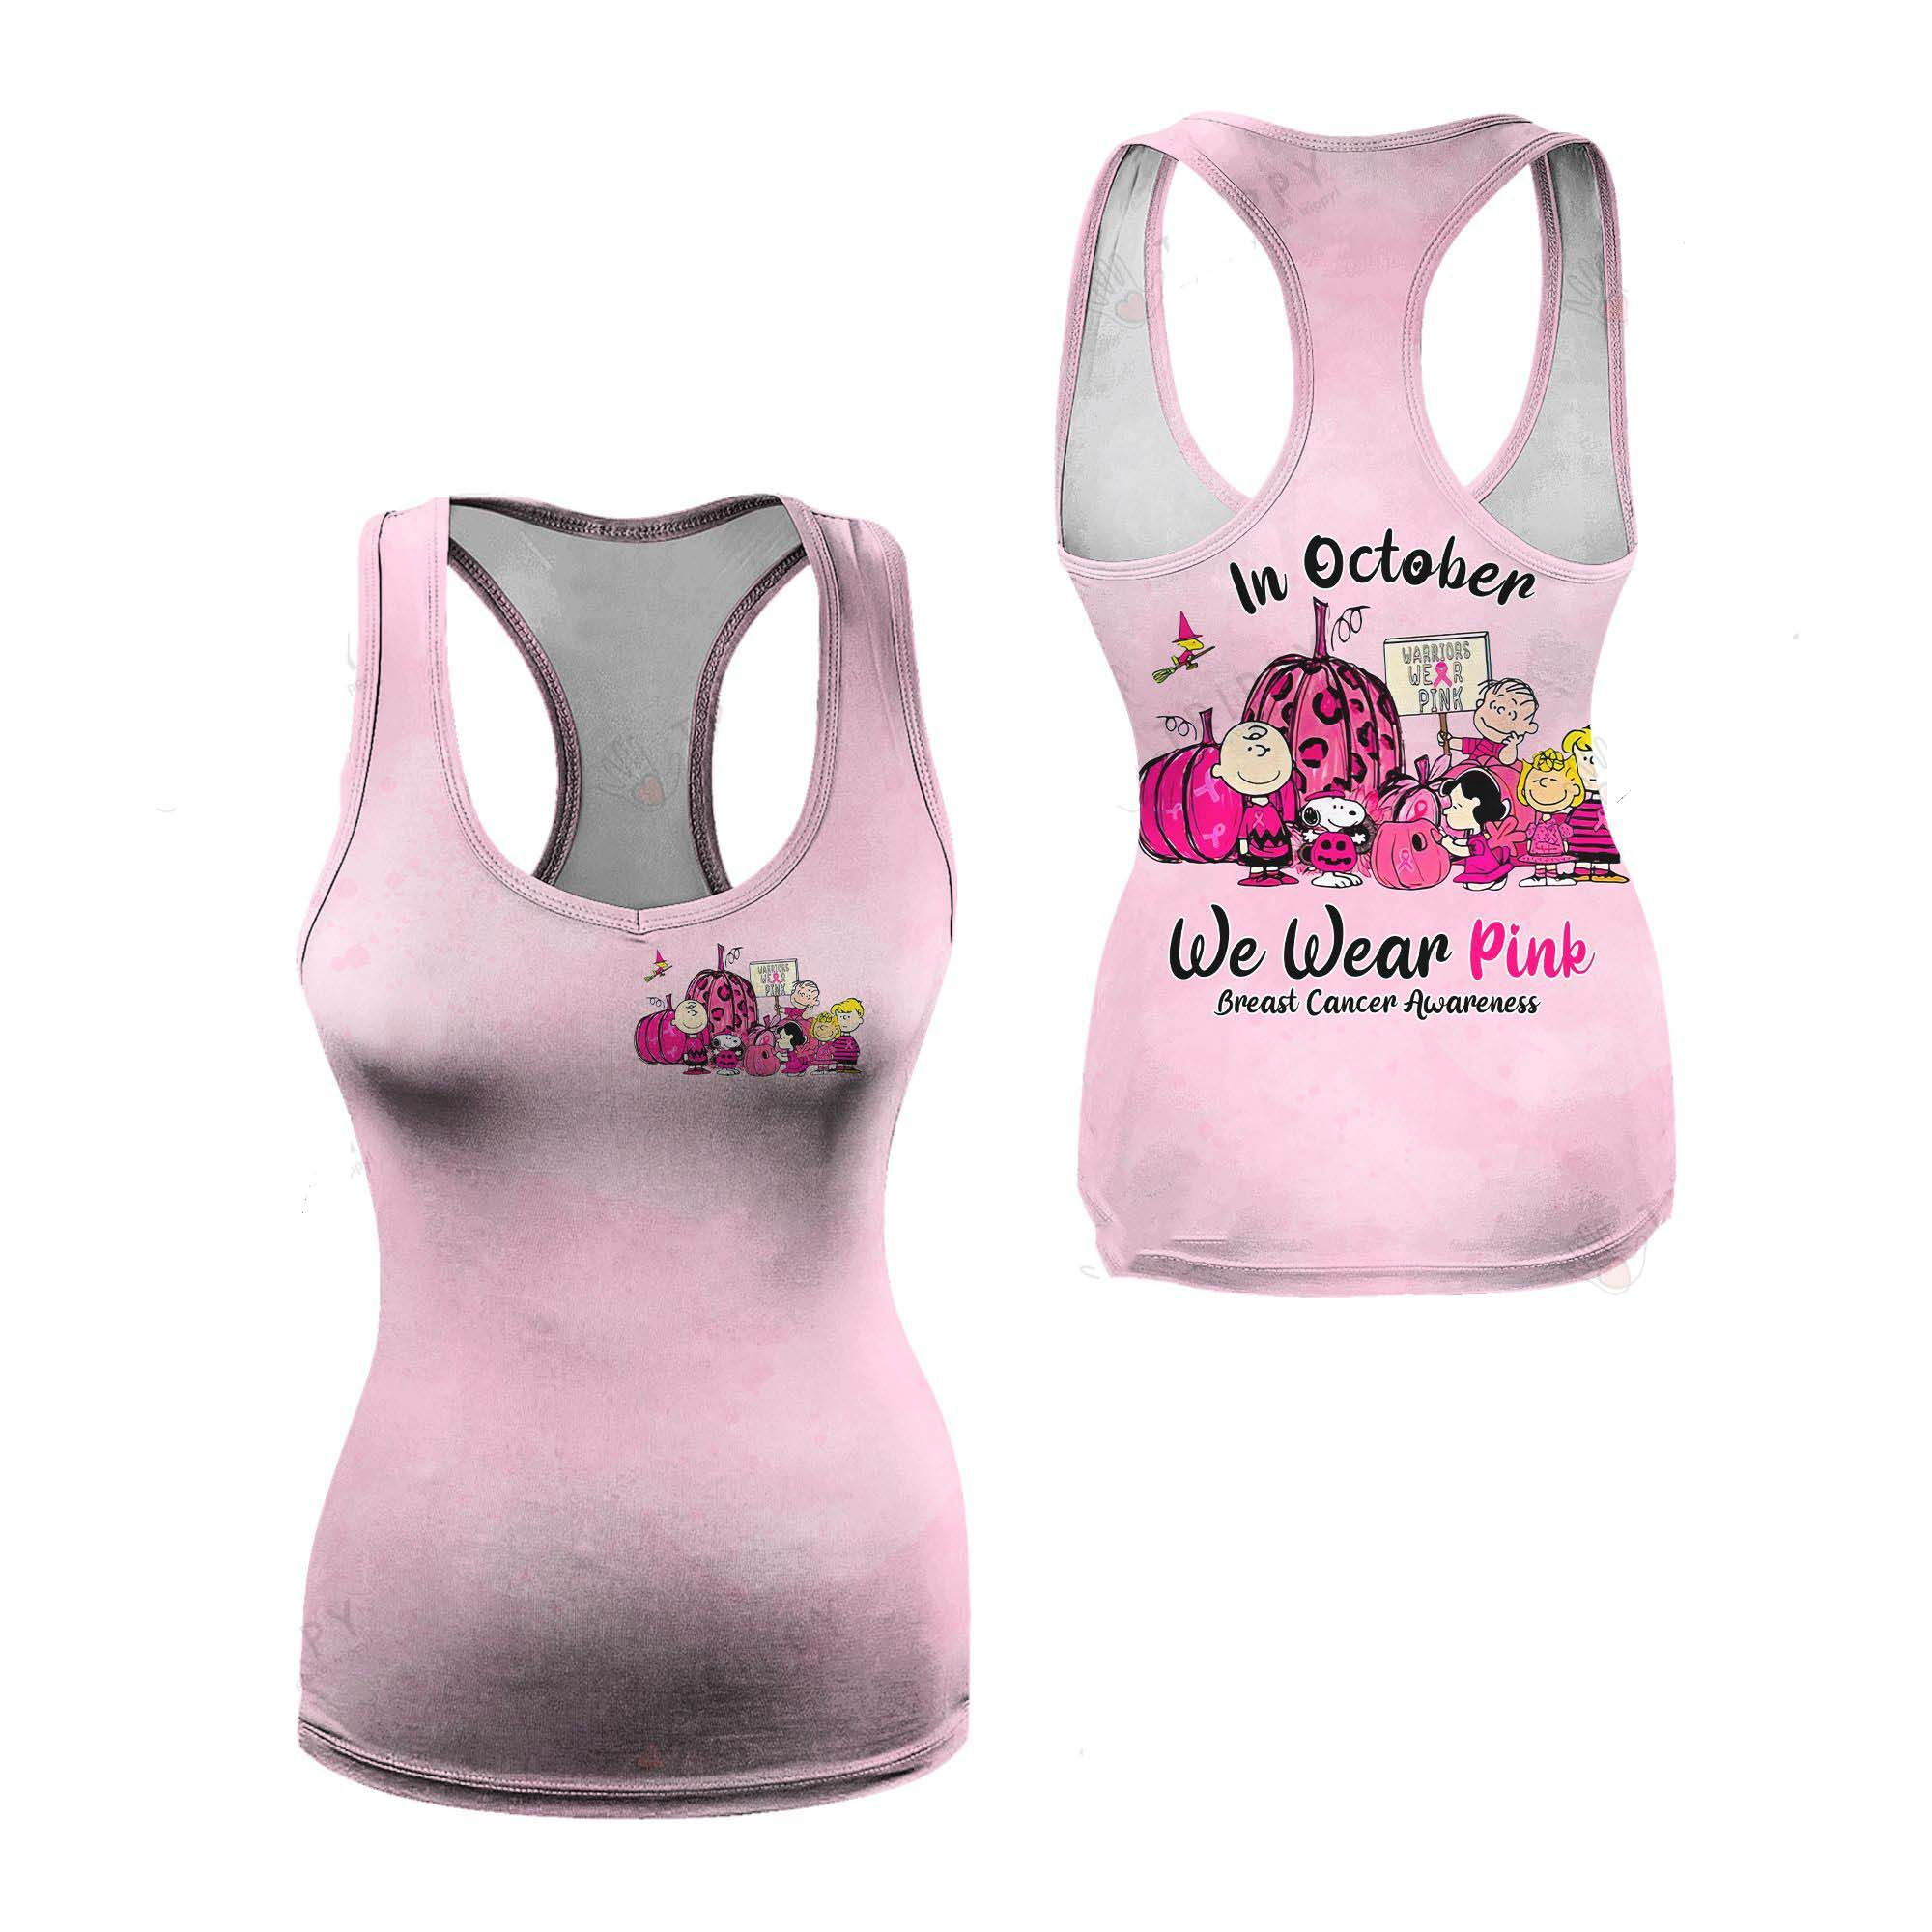 Snoopy and Friends In October we wear pink Breast cancer awareness 3d tank top